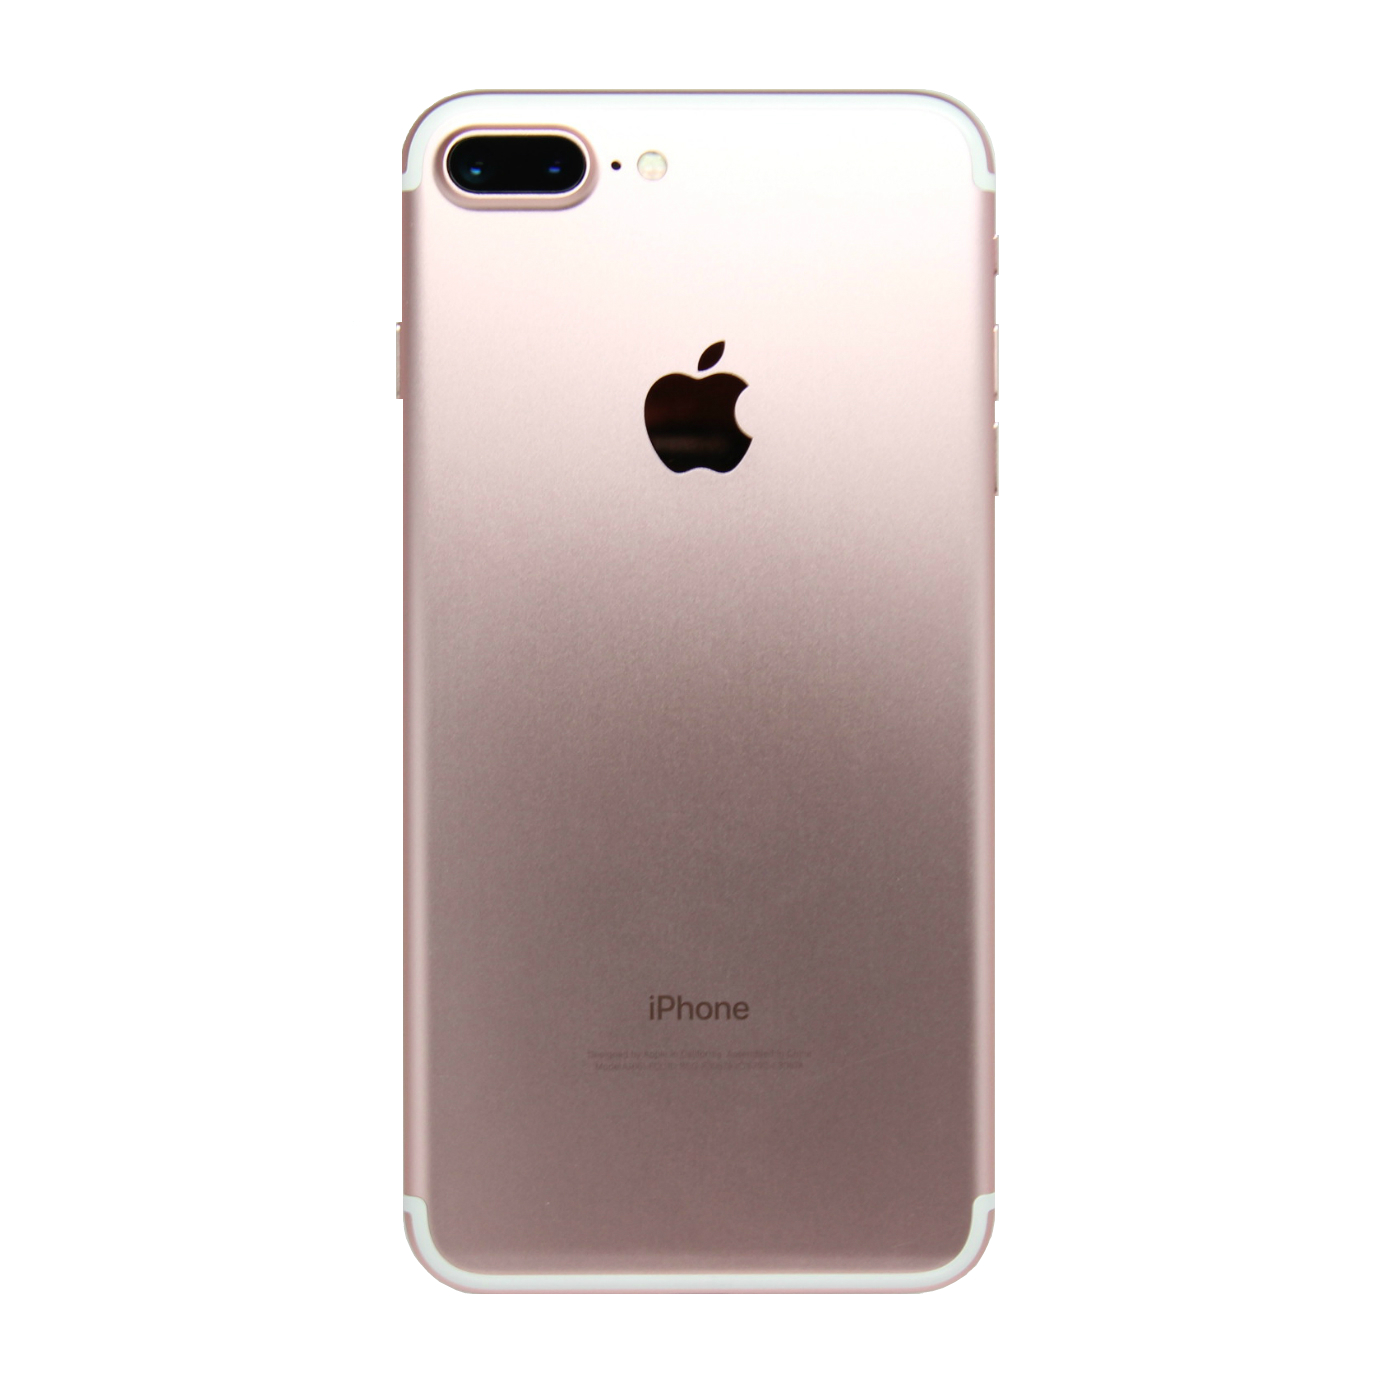 Apple iPhone 7 Plus a1784 32GB Smartphone GSM Unlocked | eBay